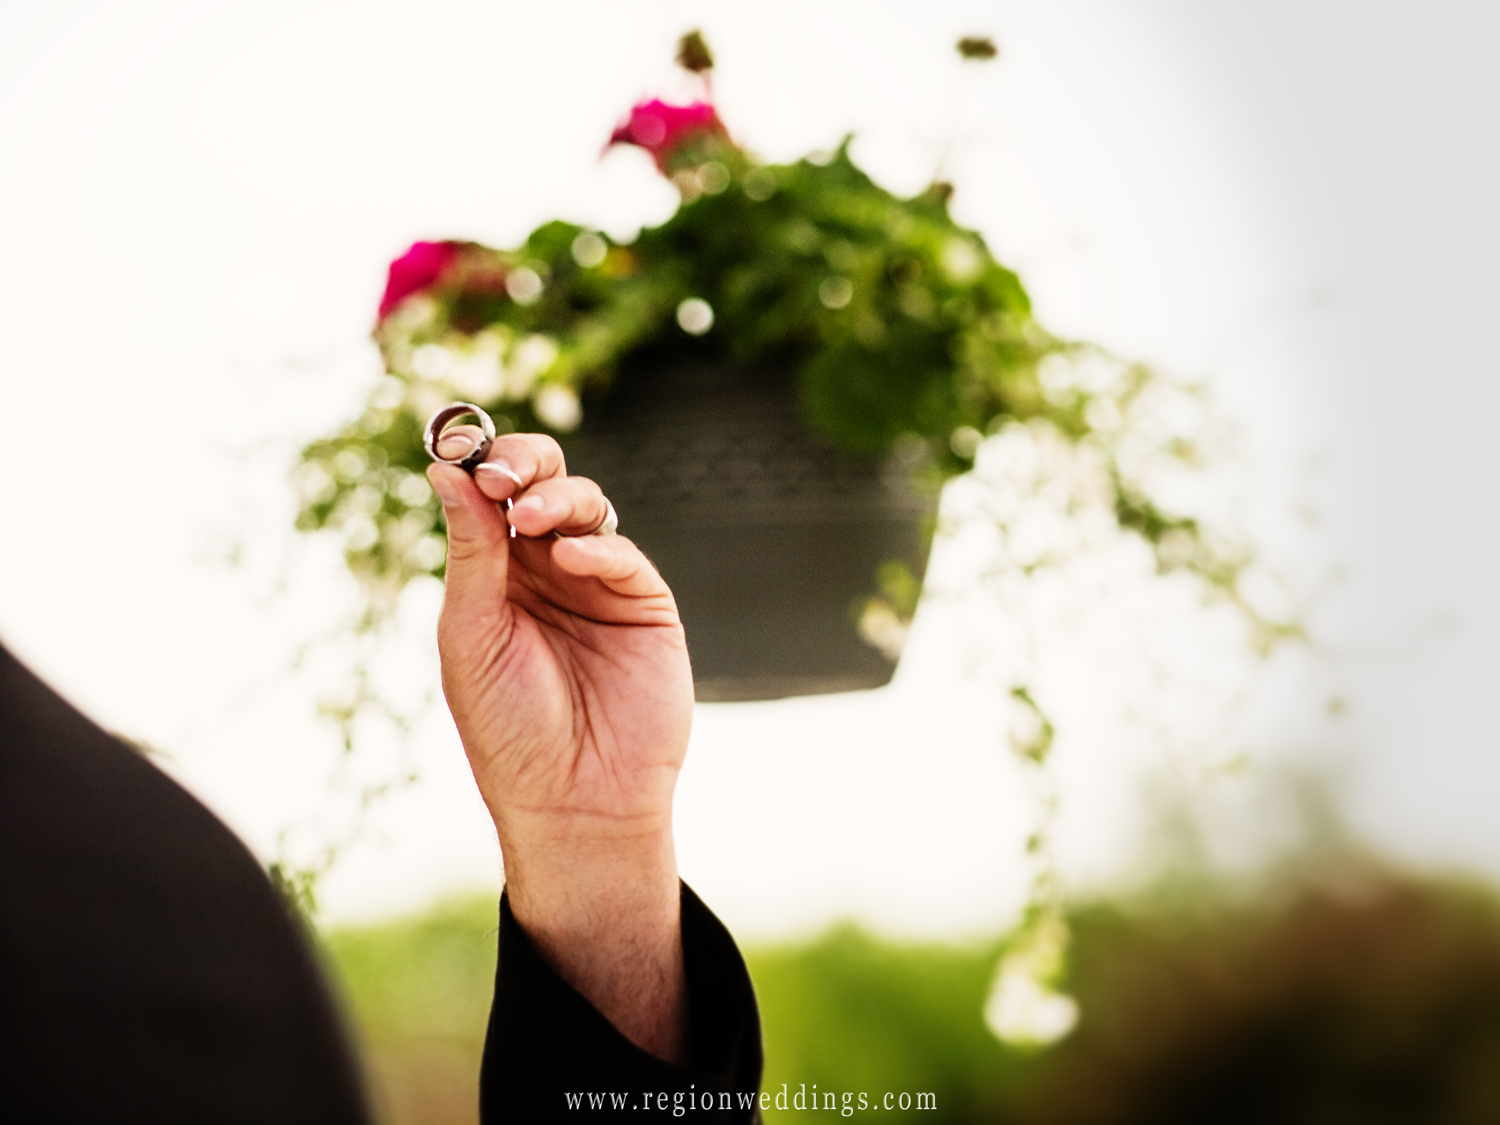 A pastor holds up the wedding rings at an outdoor wedding ceremony at White Hawk Country Club in Crown Point, Indiana.